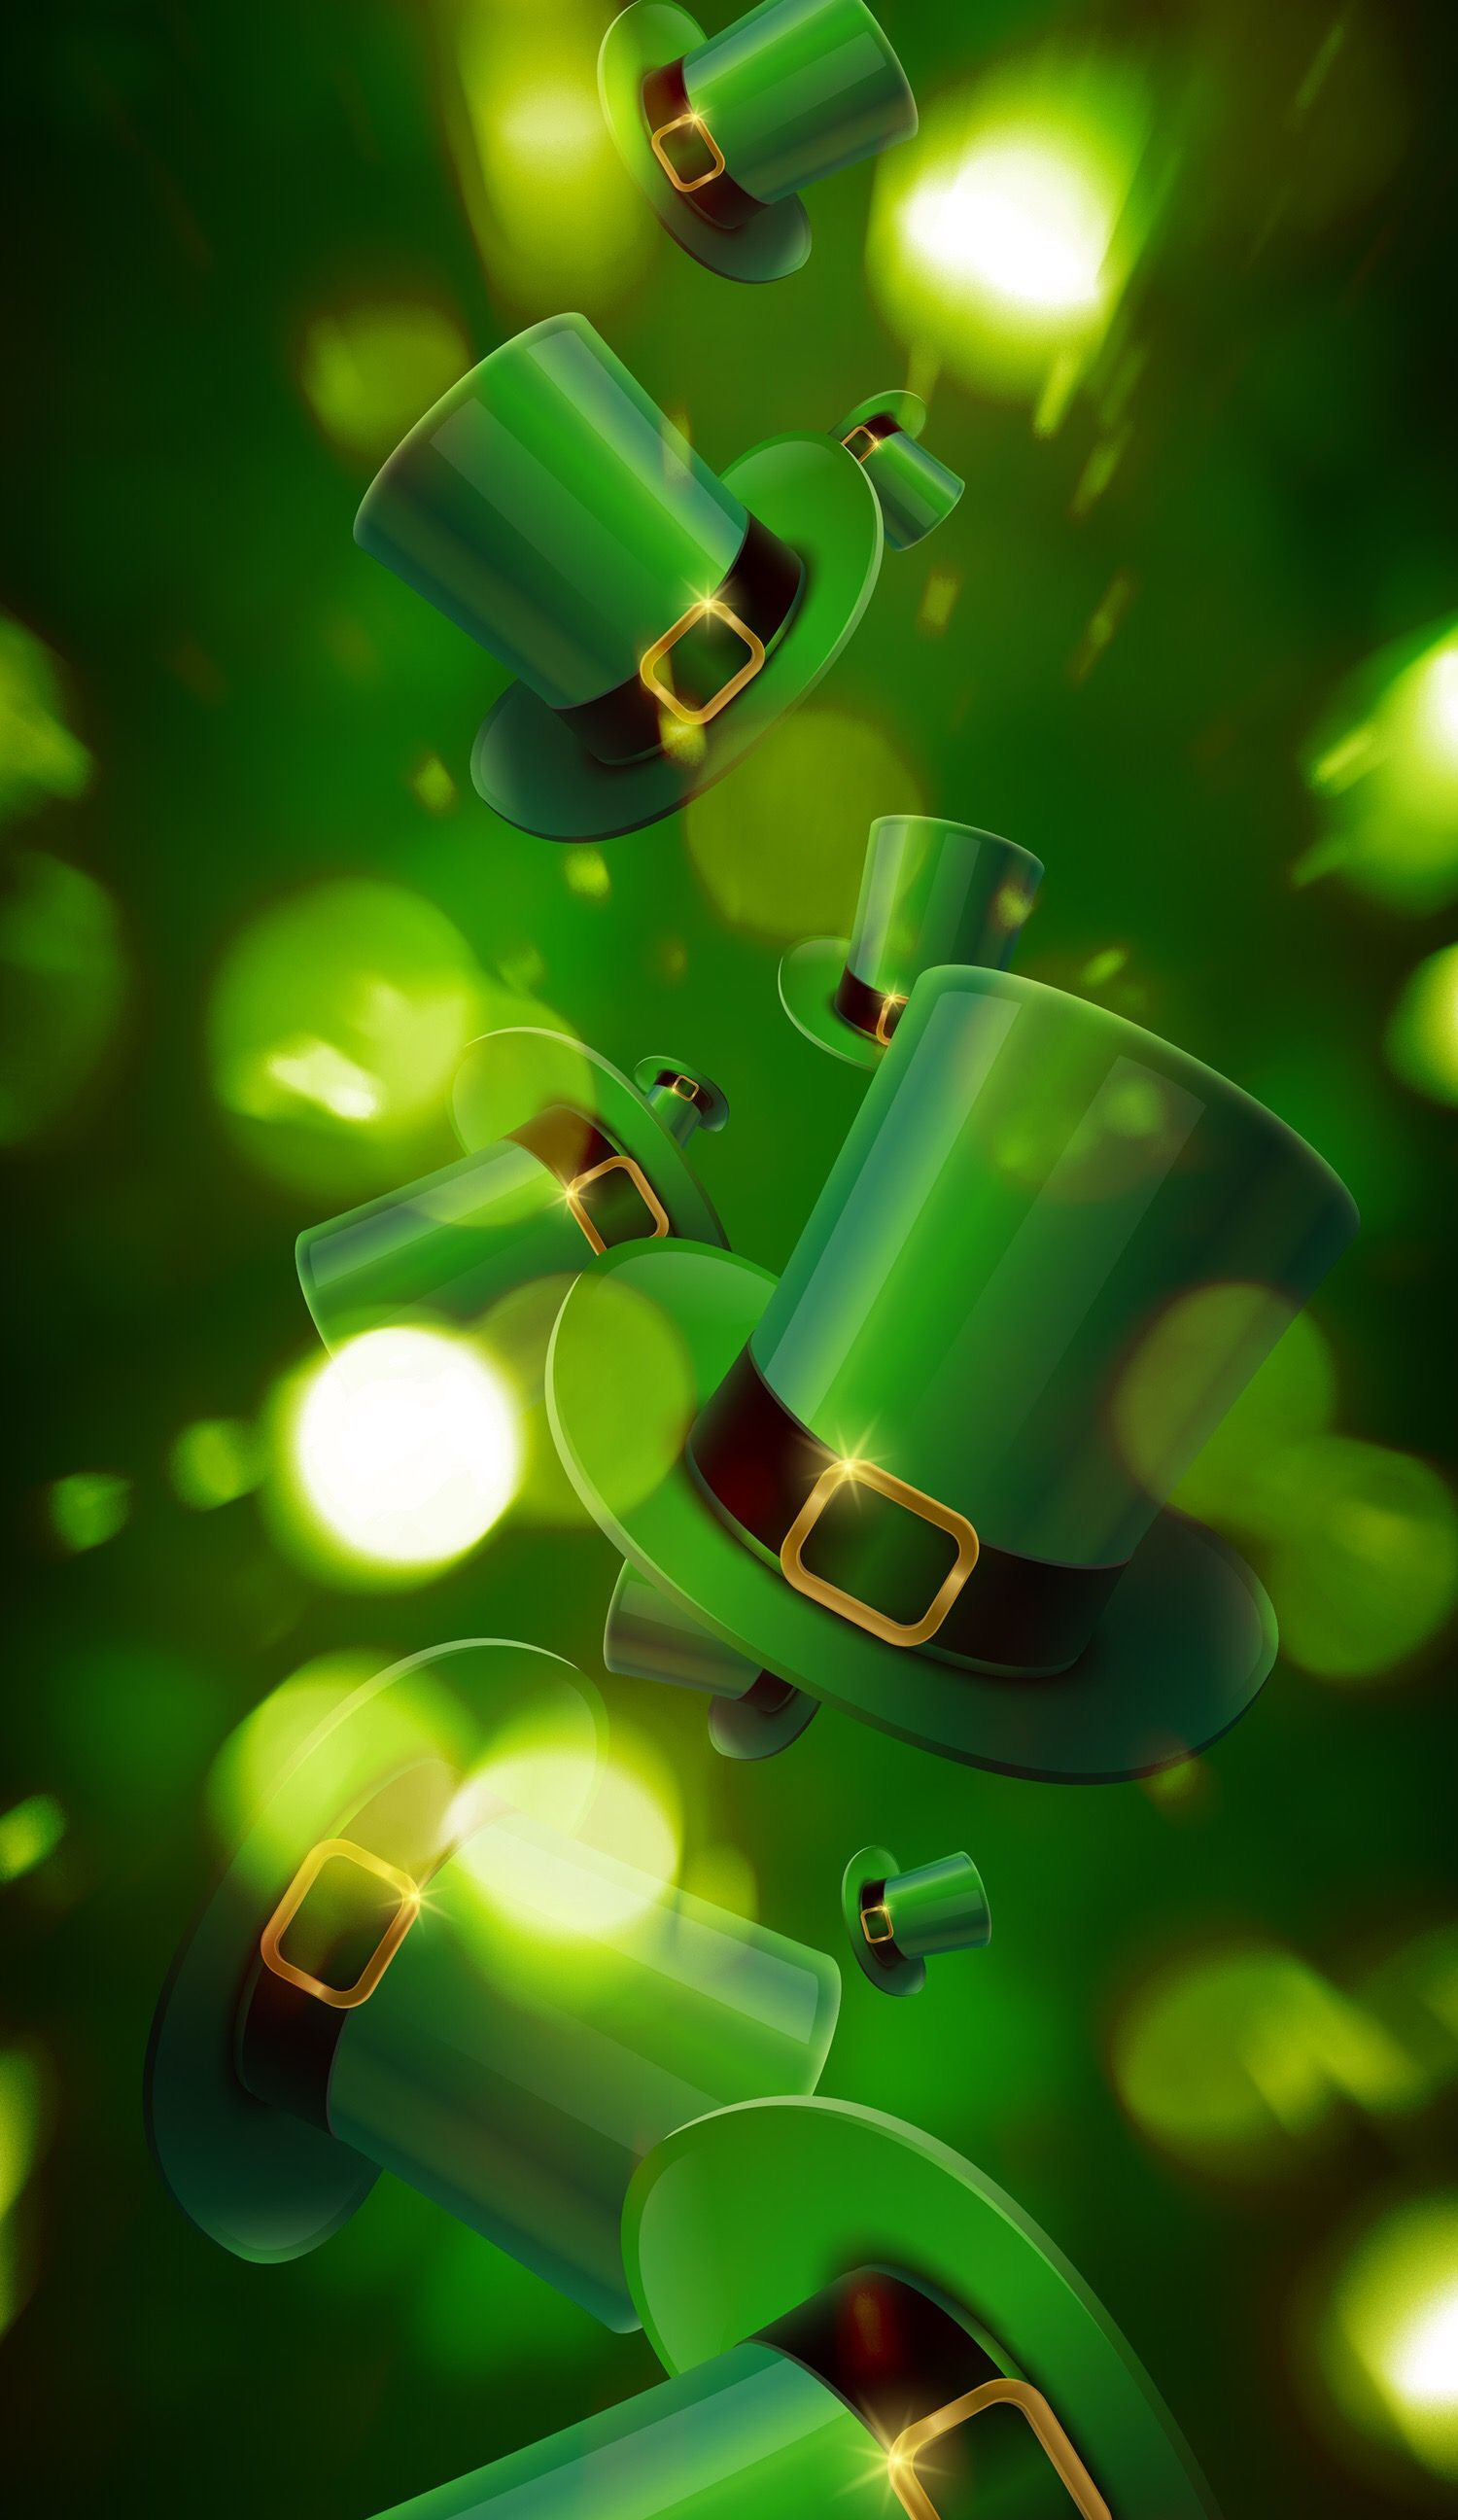 Pin by Lulu Whitney on Phone wallpapers St patricks day